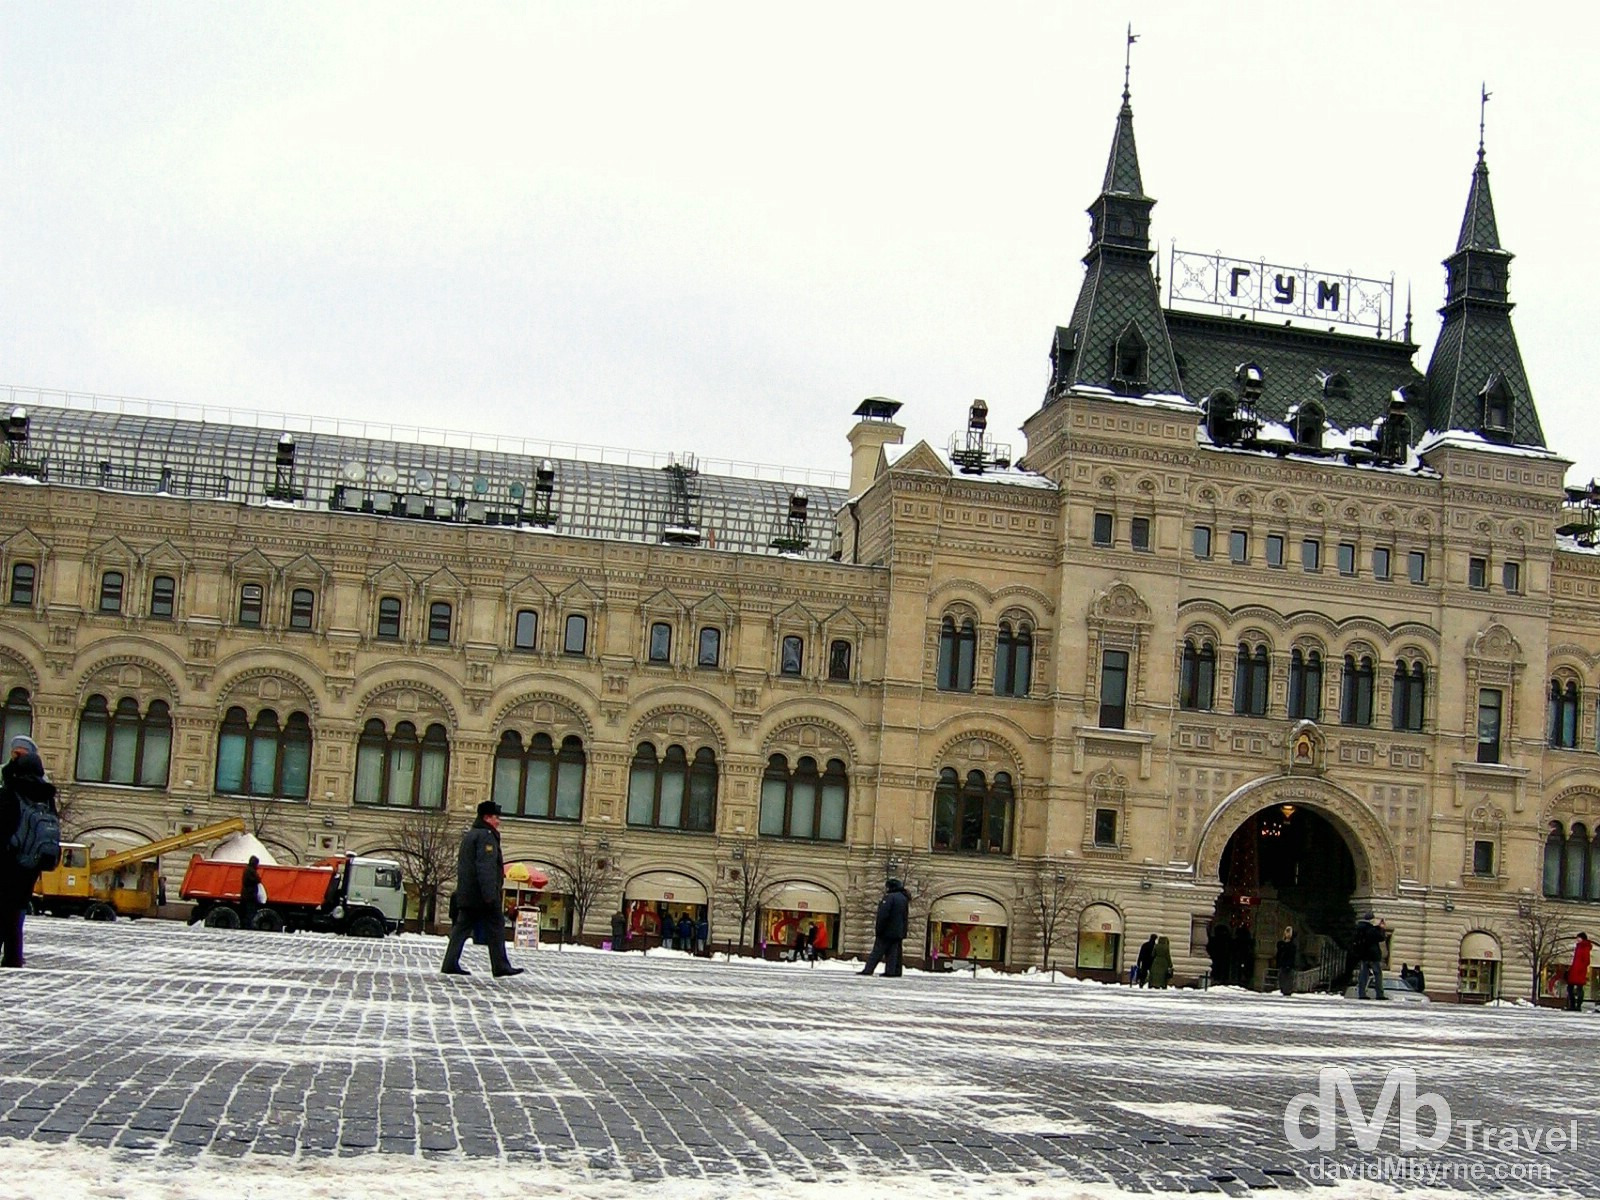 The GUM Department Store as seen from Red Square, Moscow, Russia. February 26, 2006.